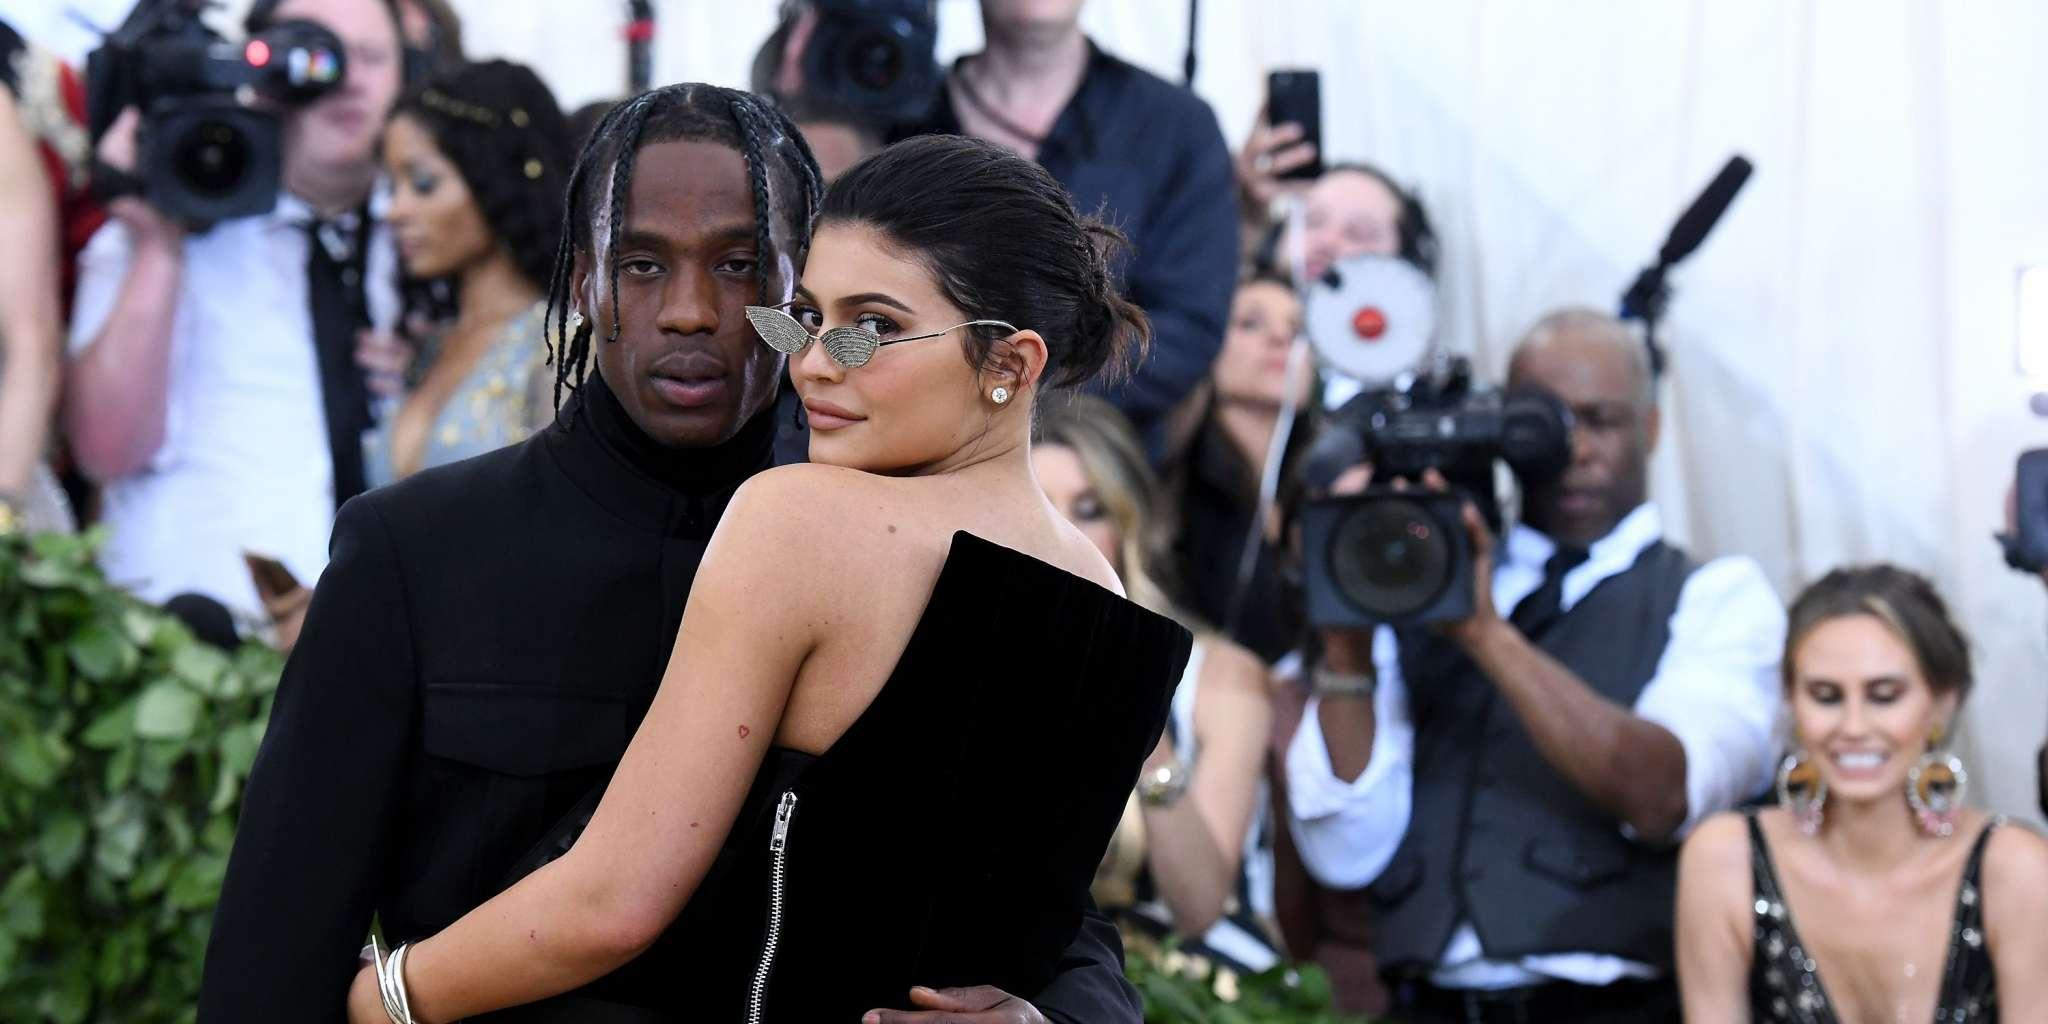 KUWK: Kylie Jenner Asks Travis Scott To Have Another Baby In Birthday Tribute